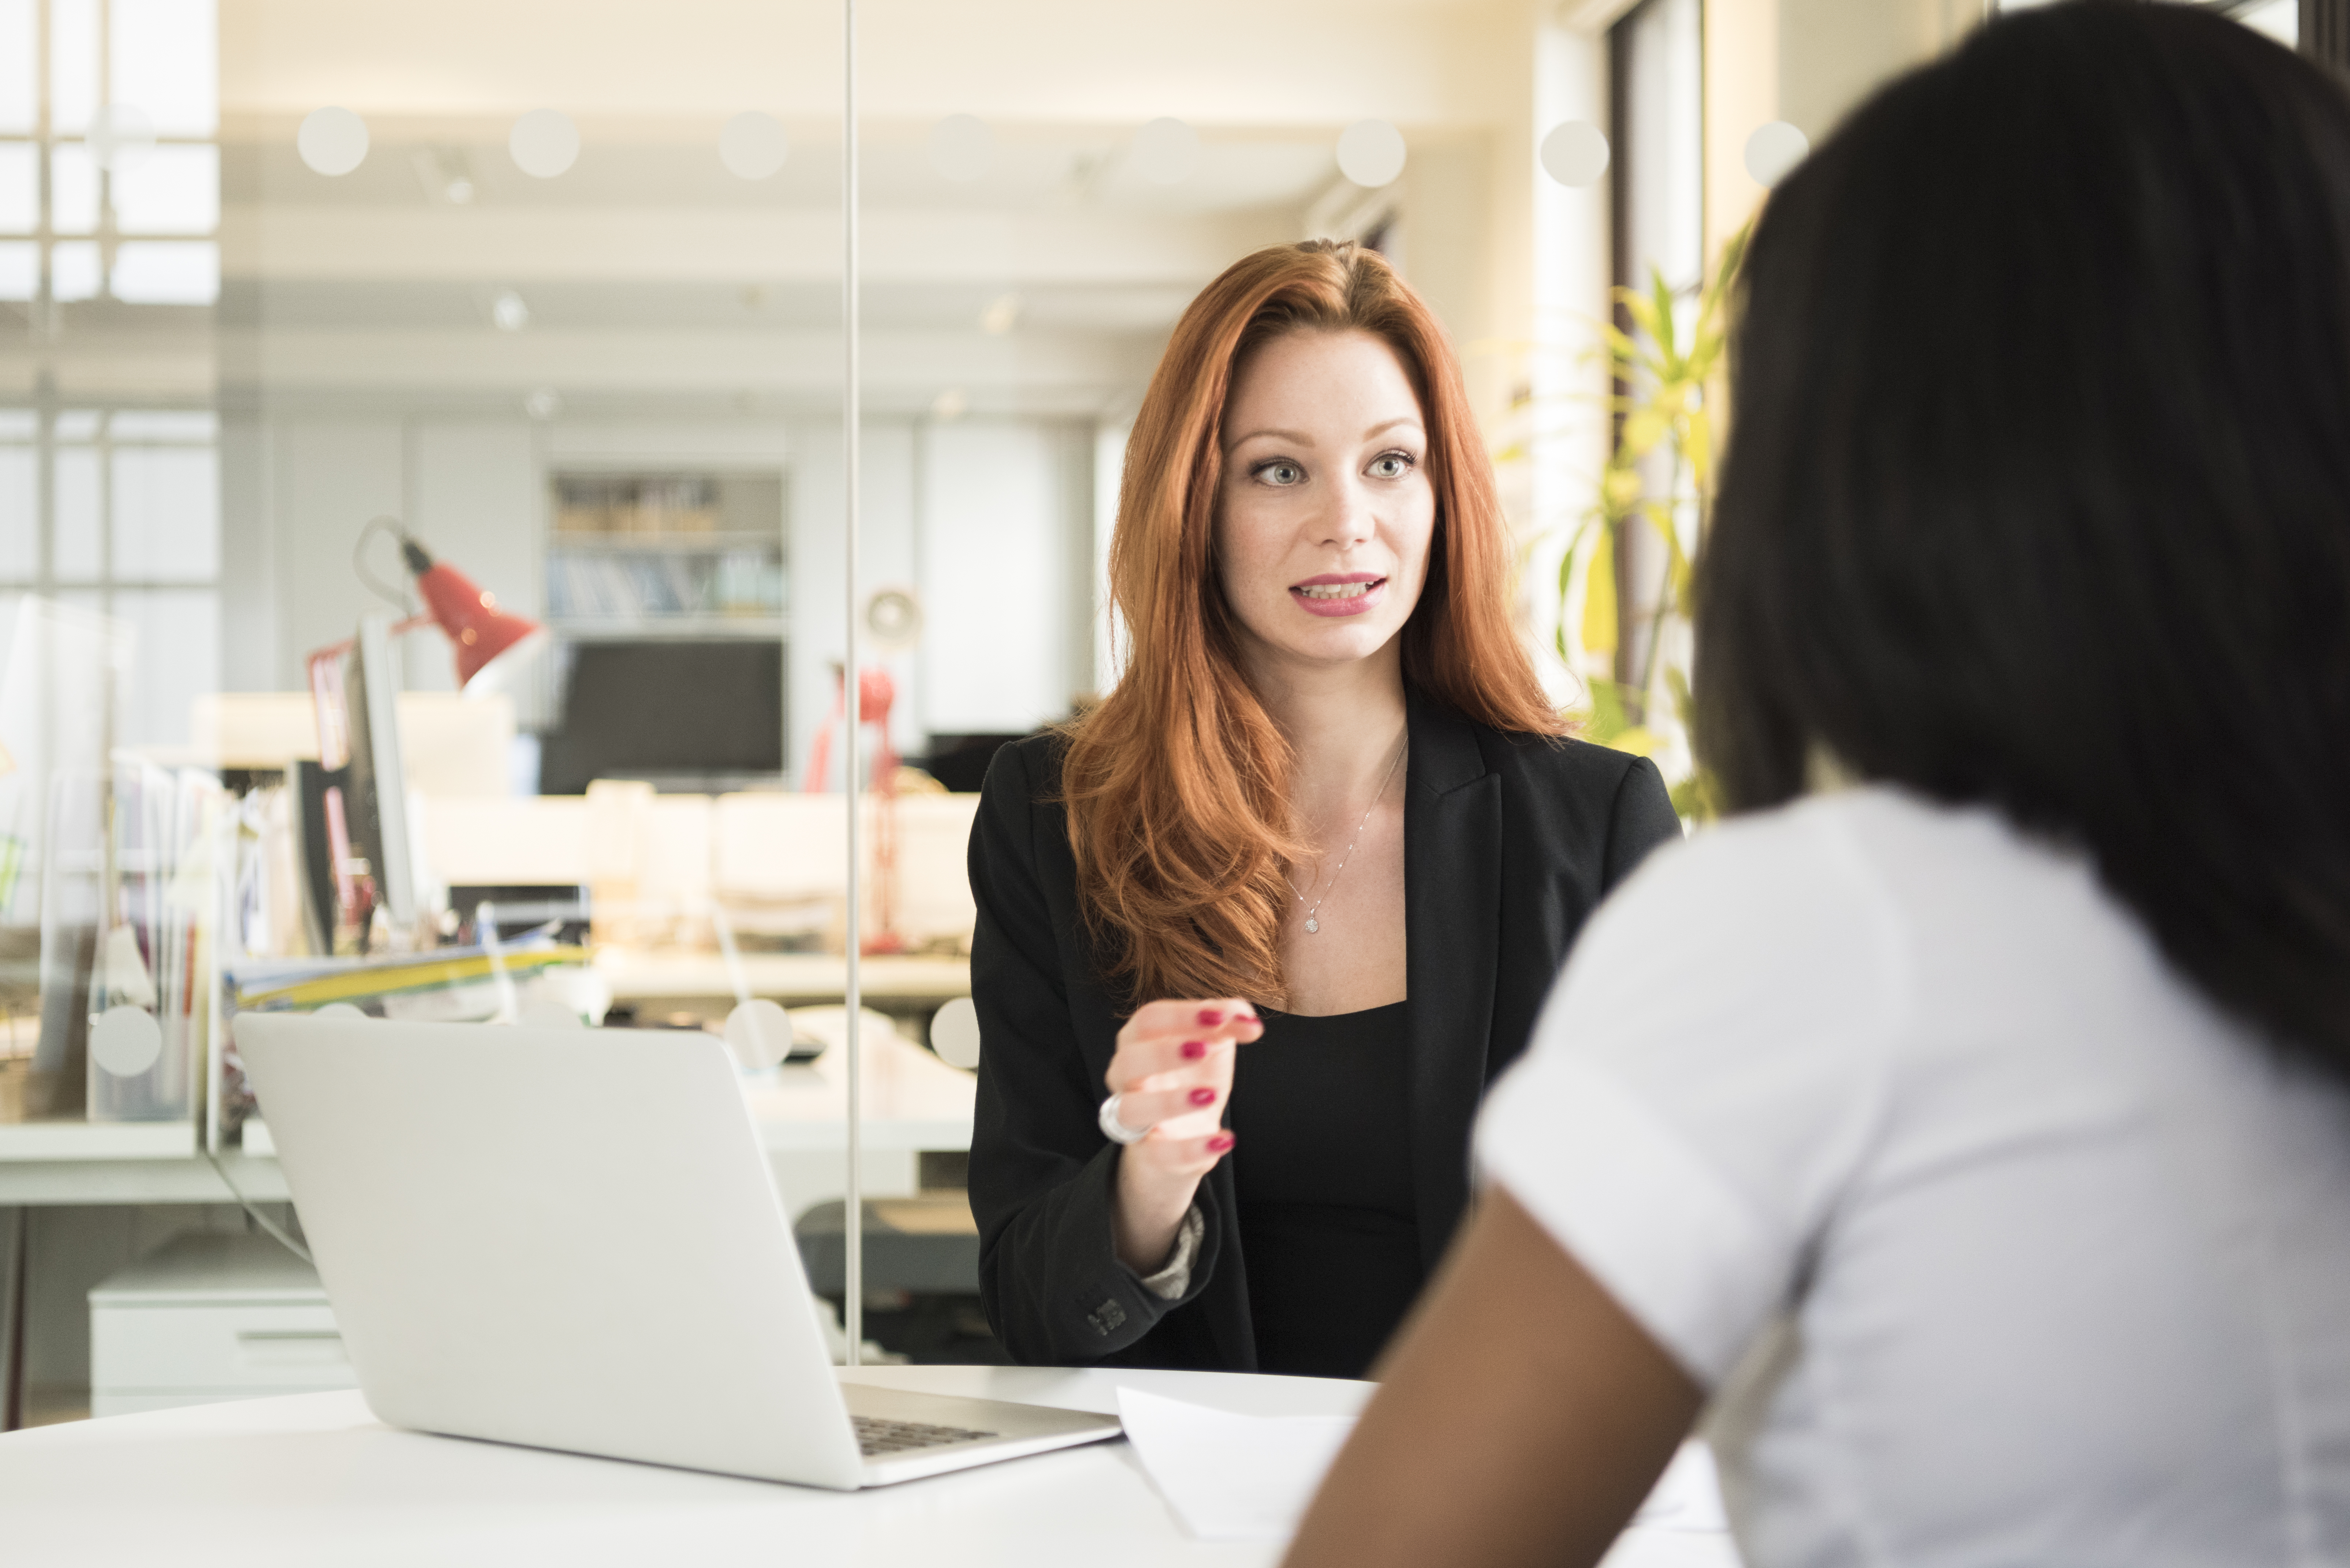 Job Offer From a New Company: How to Talk to My Boss | Chron com